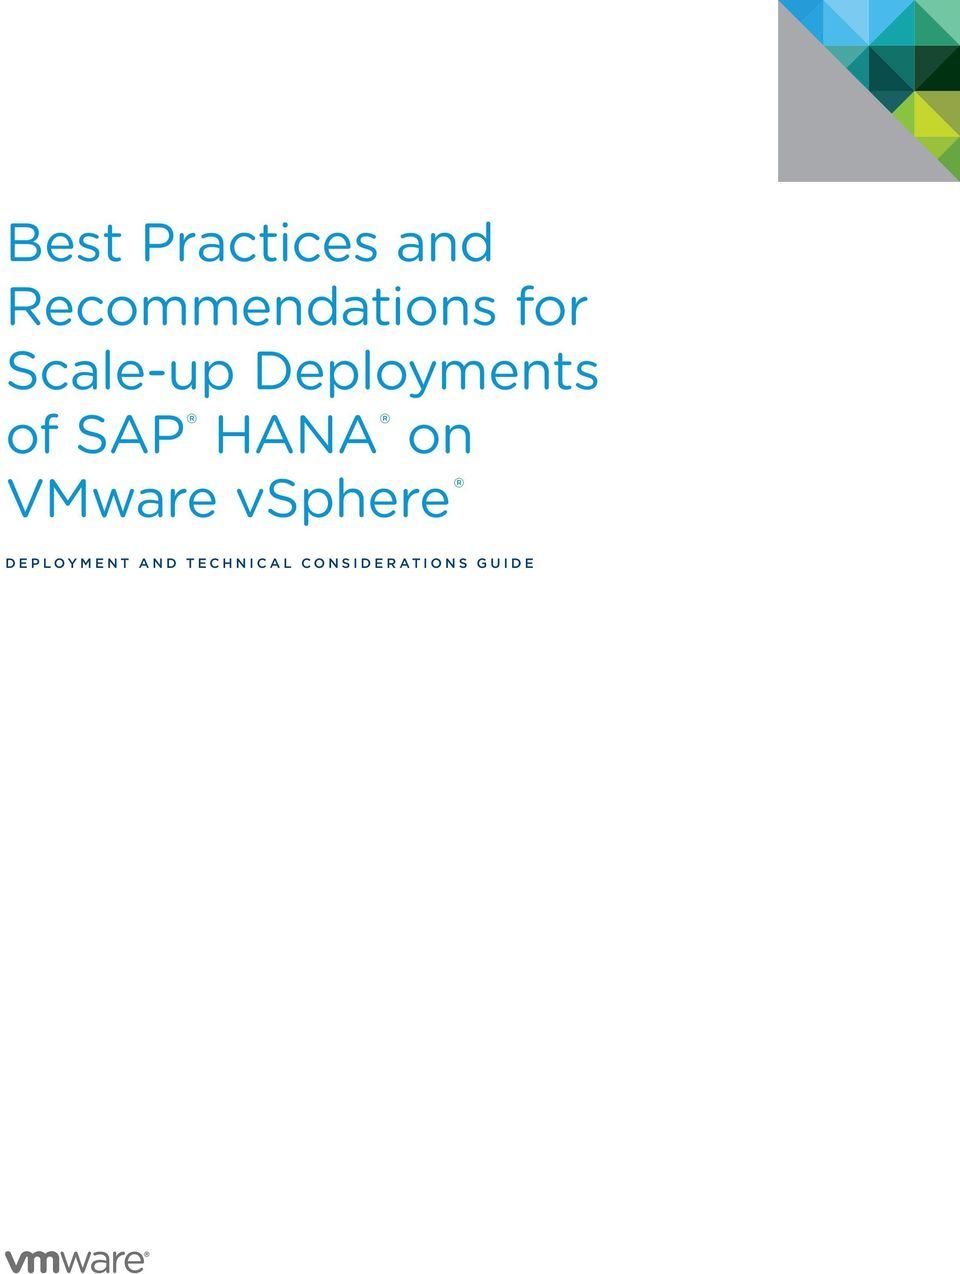 Deployments of SAP HANA on VMware